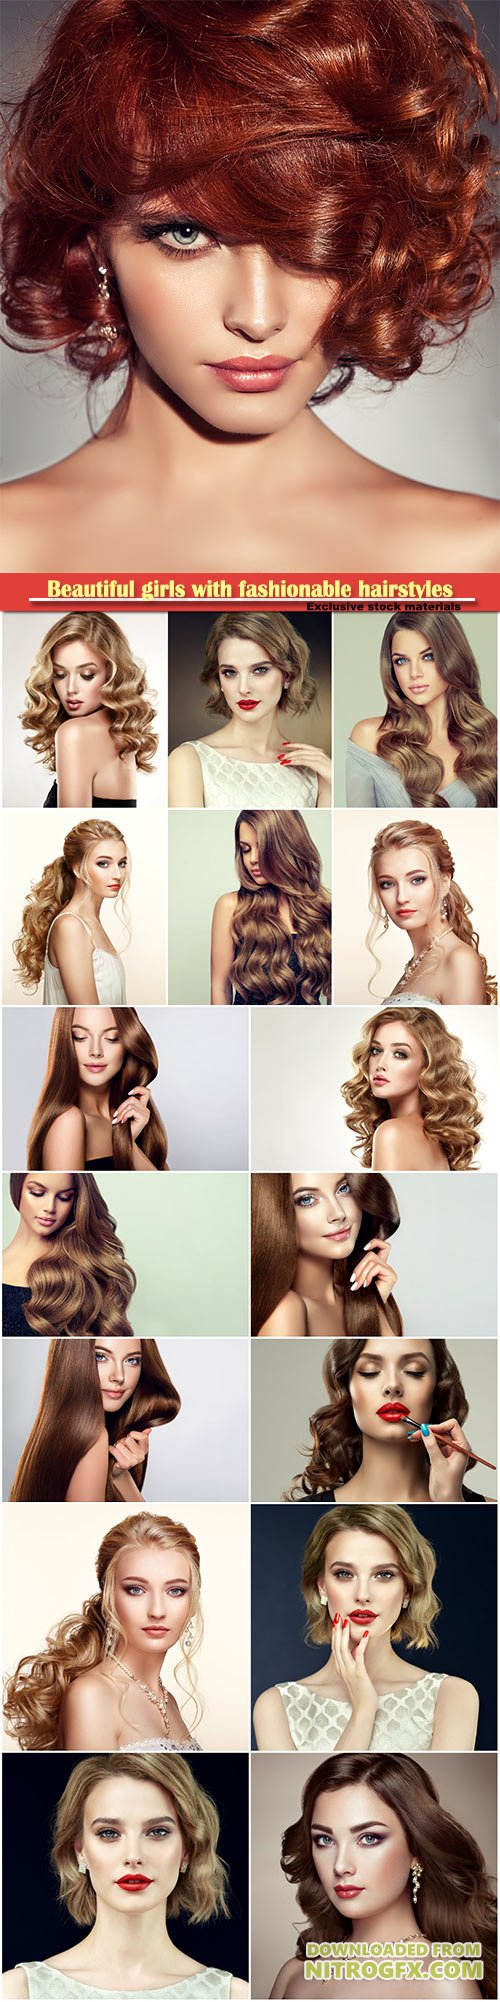 Beautiful girls with fashionable hairstyles and stylish make-up